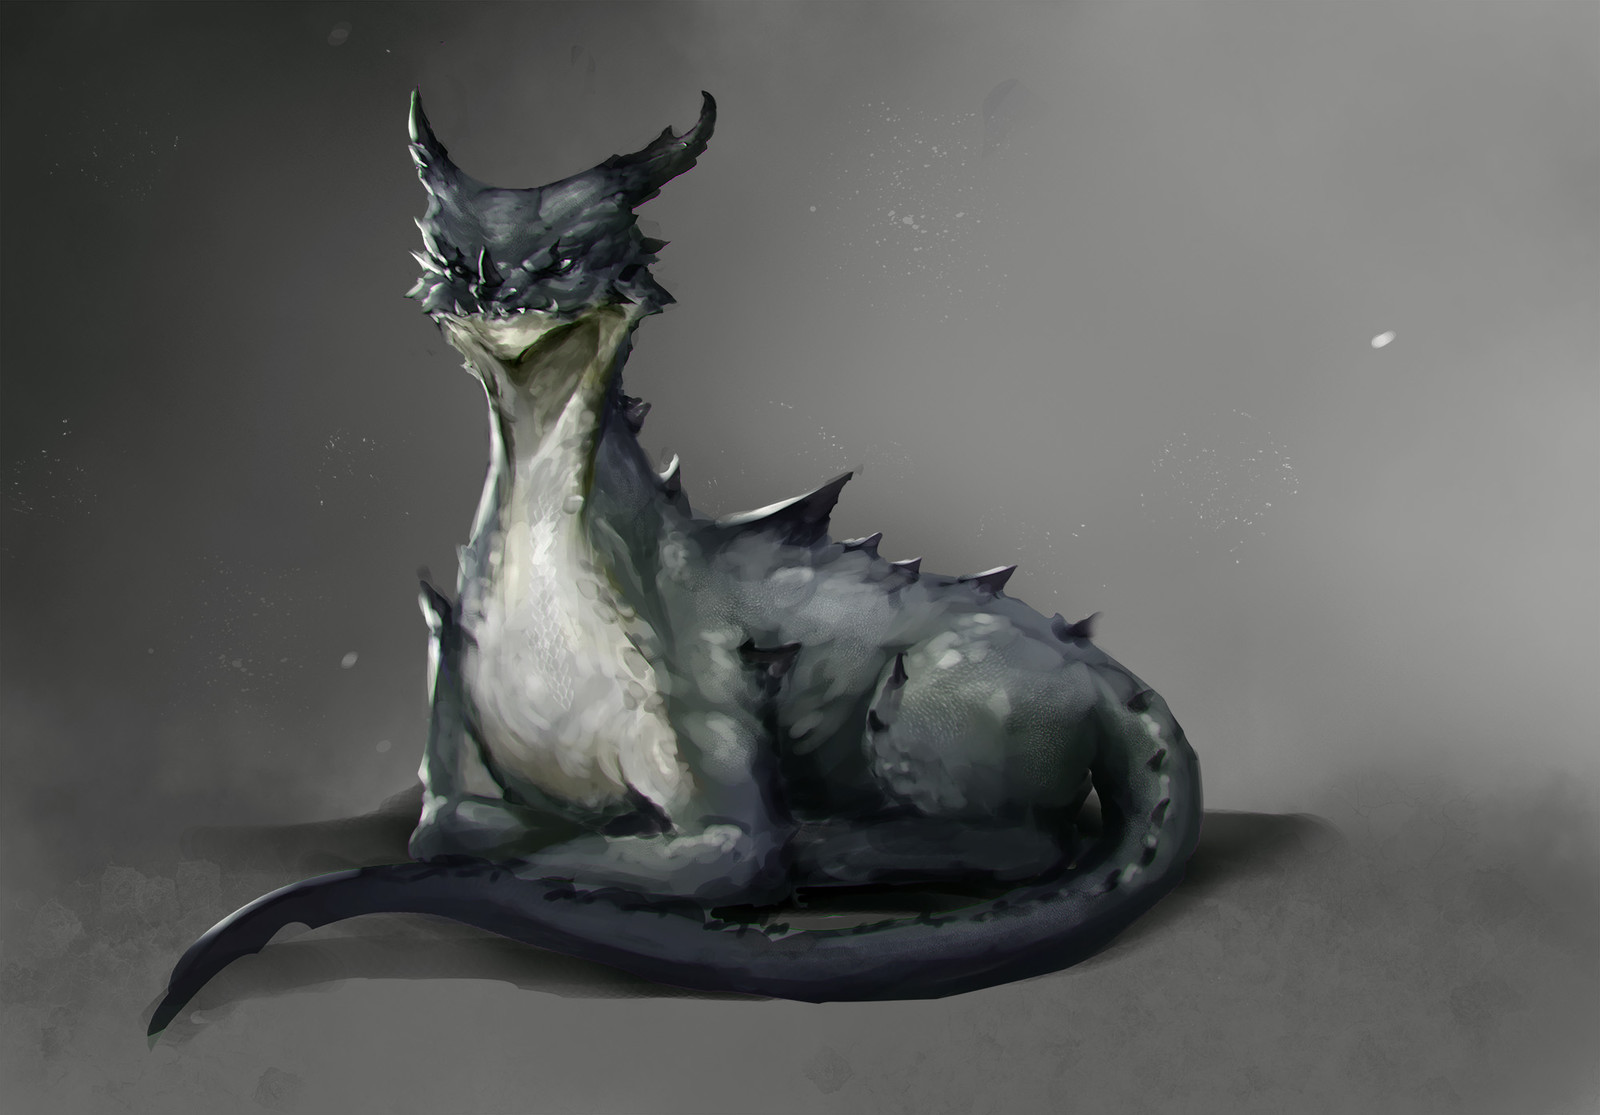 Relaxed dragon